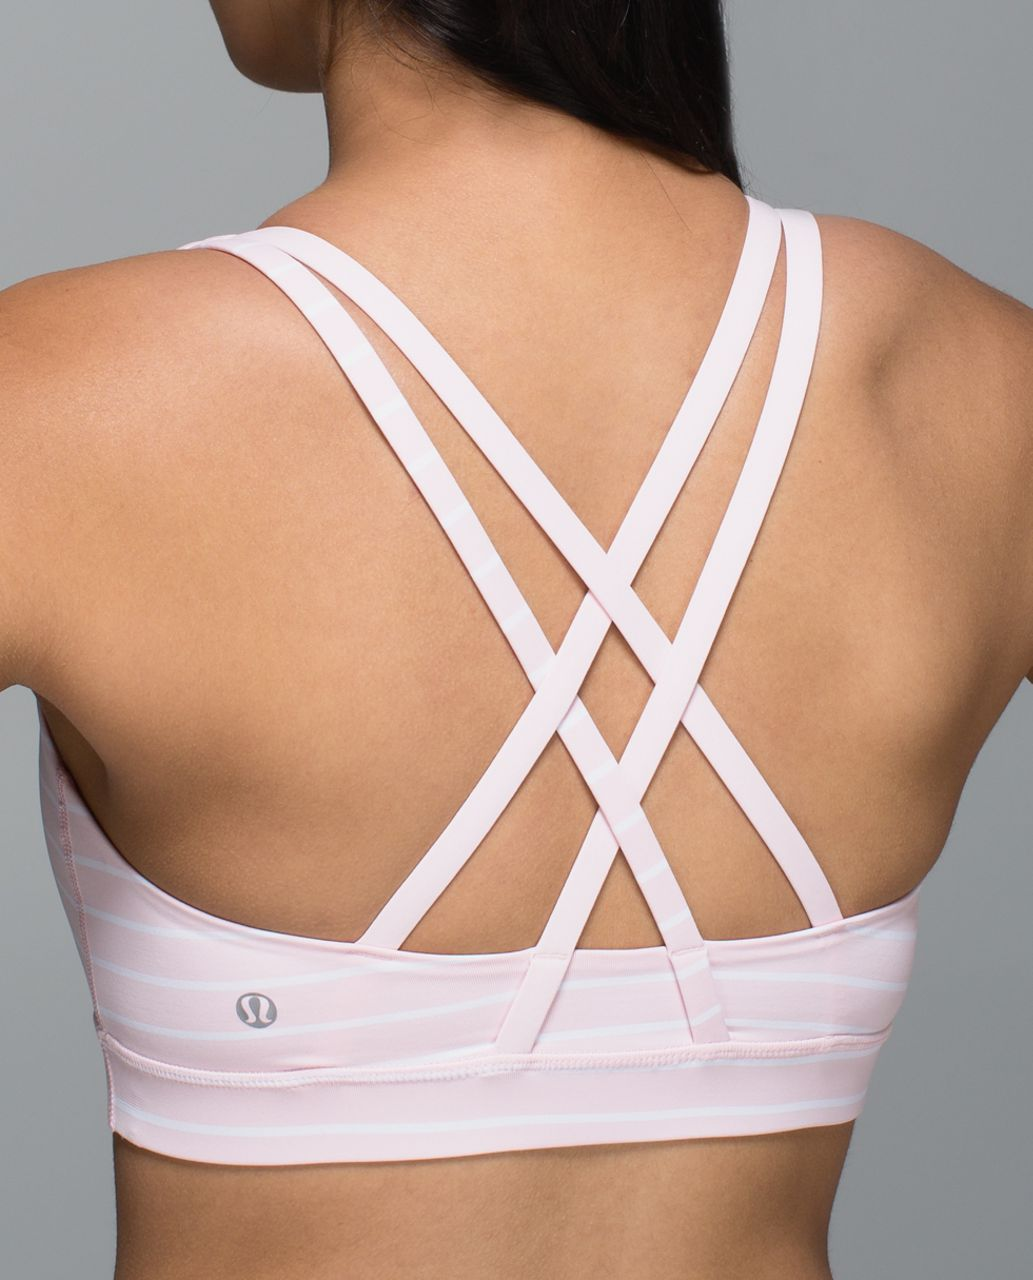 Lululemon Energy Bra - Quiet Stripe Strawberry Milkshake White / Strawberry Milkshake